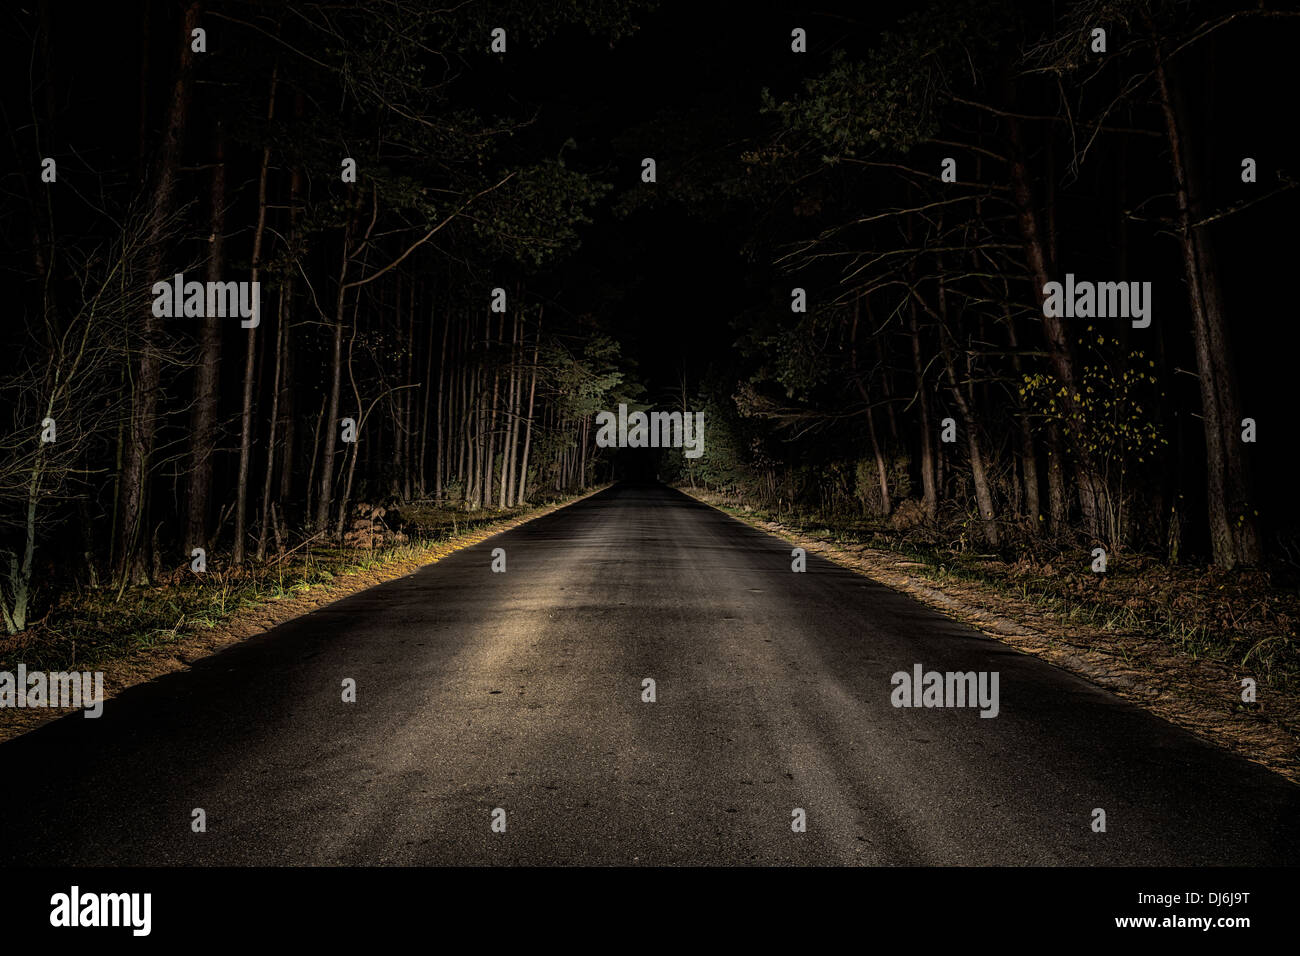 Night Road on dark forest. - Stock Image